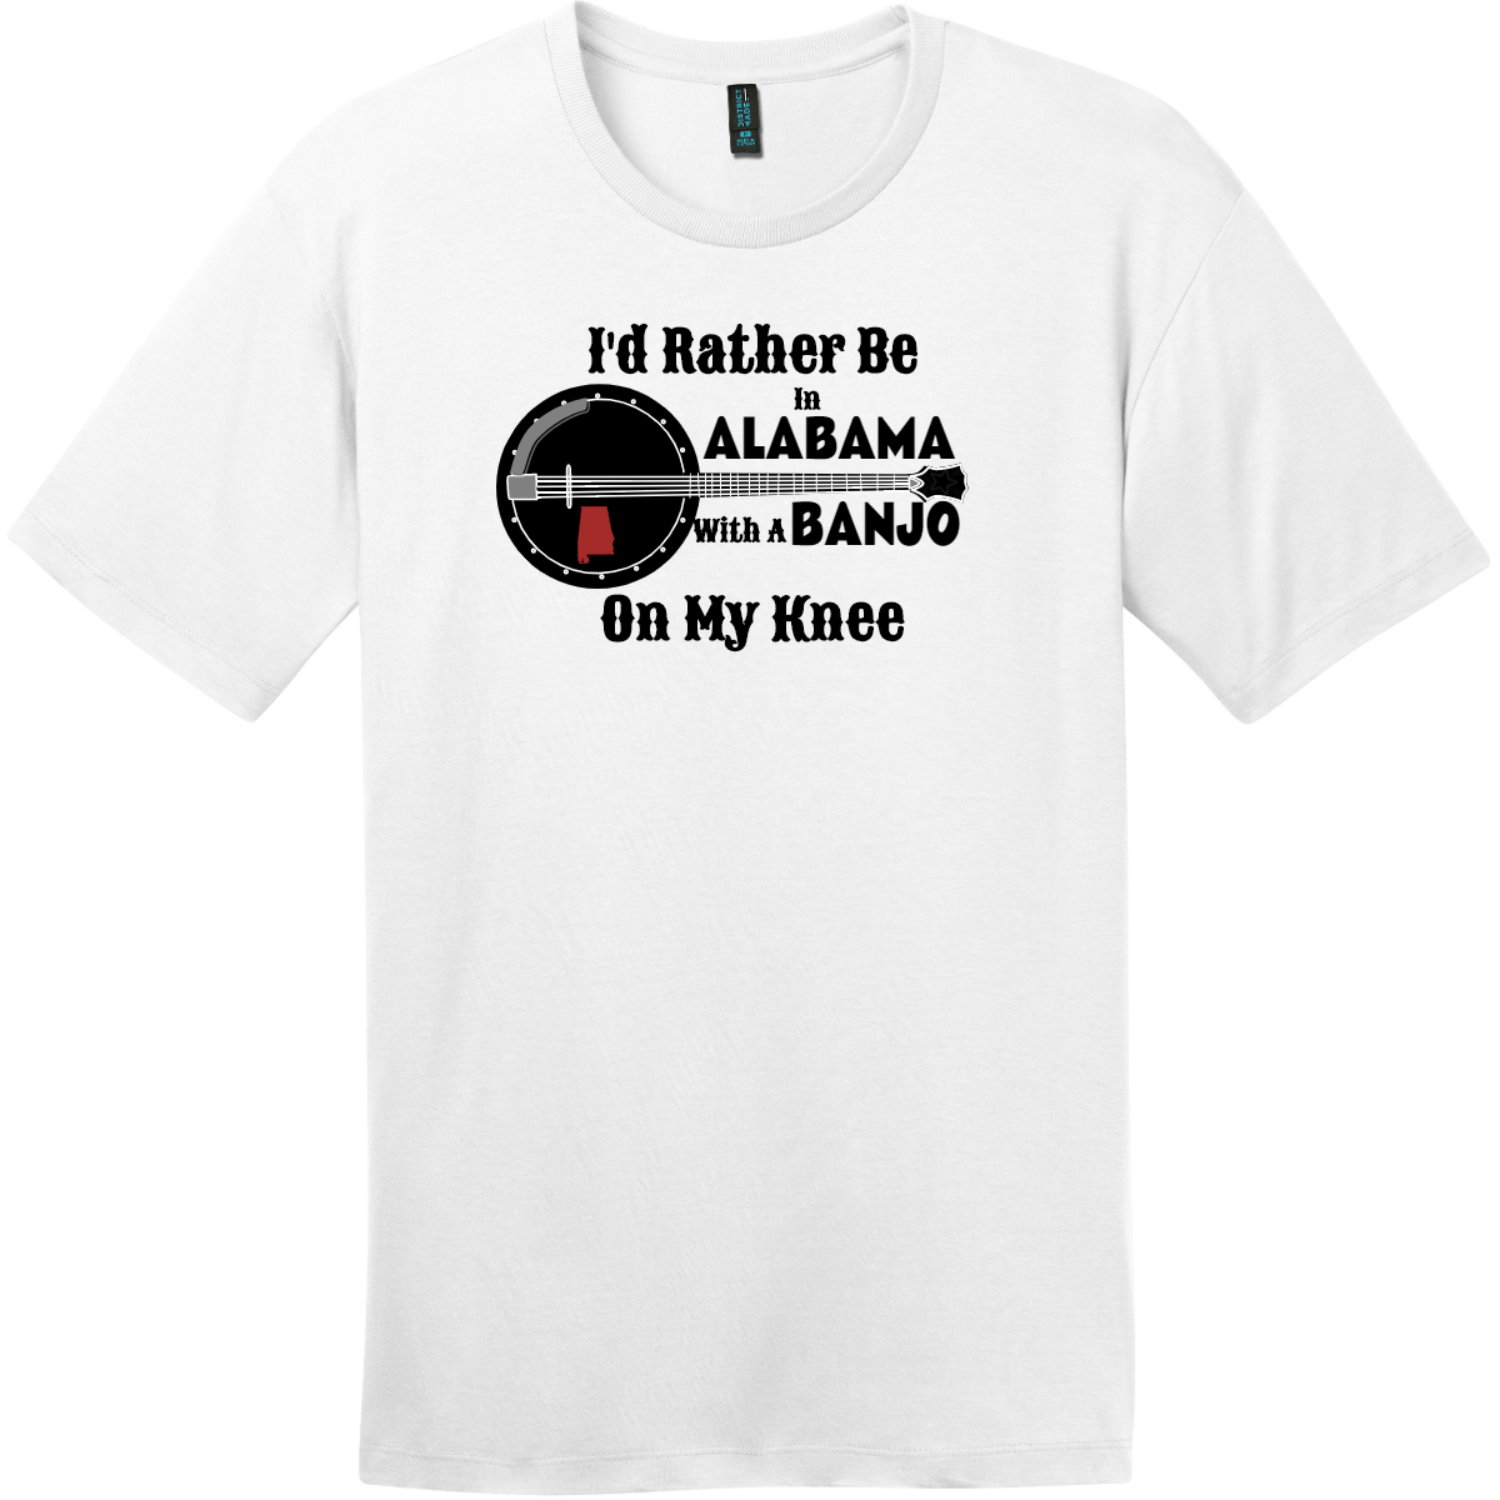 Rather Be In Alabama Banjo T-Shirt Bright White District Perfect Weight Tee DT104